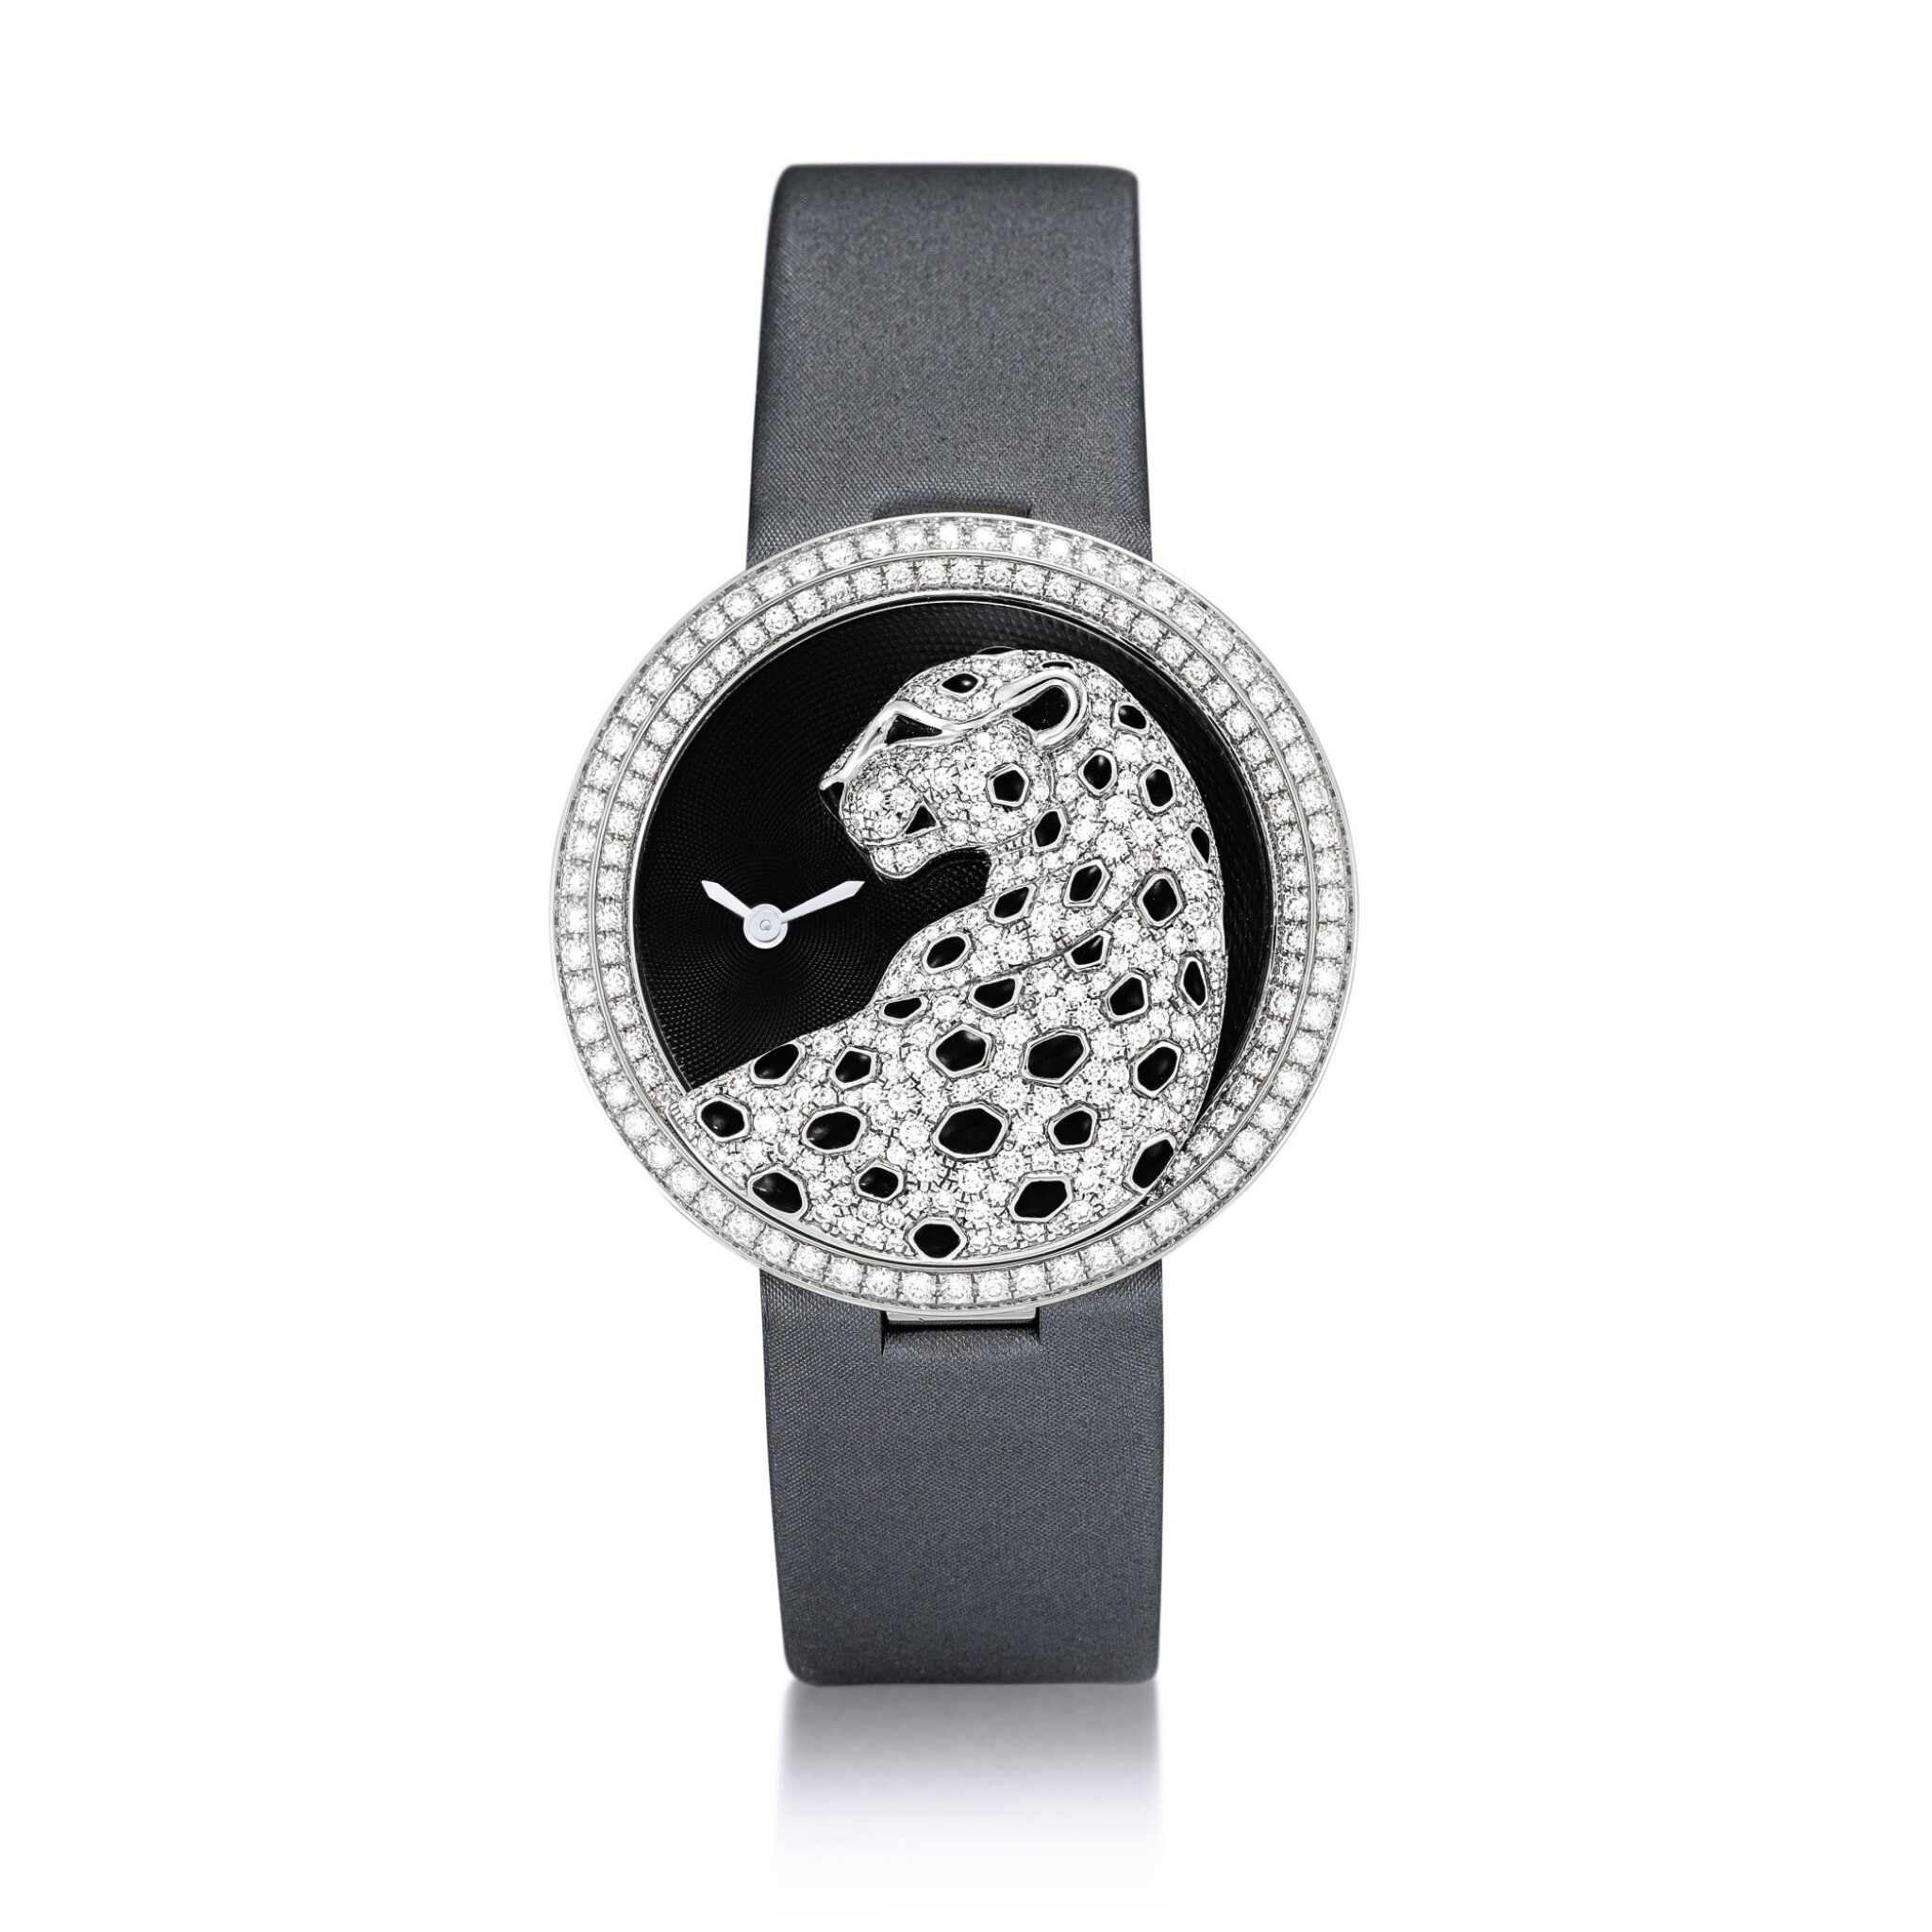 View full screen - View 1 of Lot 2058. Cartier   Panthère Divine, Reference 3607, A white gold, black enamel and diamond-set wristwatch, Circa 2013   卡地亞   Panthère Divine 型號3607 白金鑲黑色琺瑯及鑽石腕錶,約2013年製.